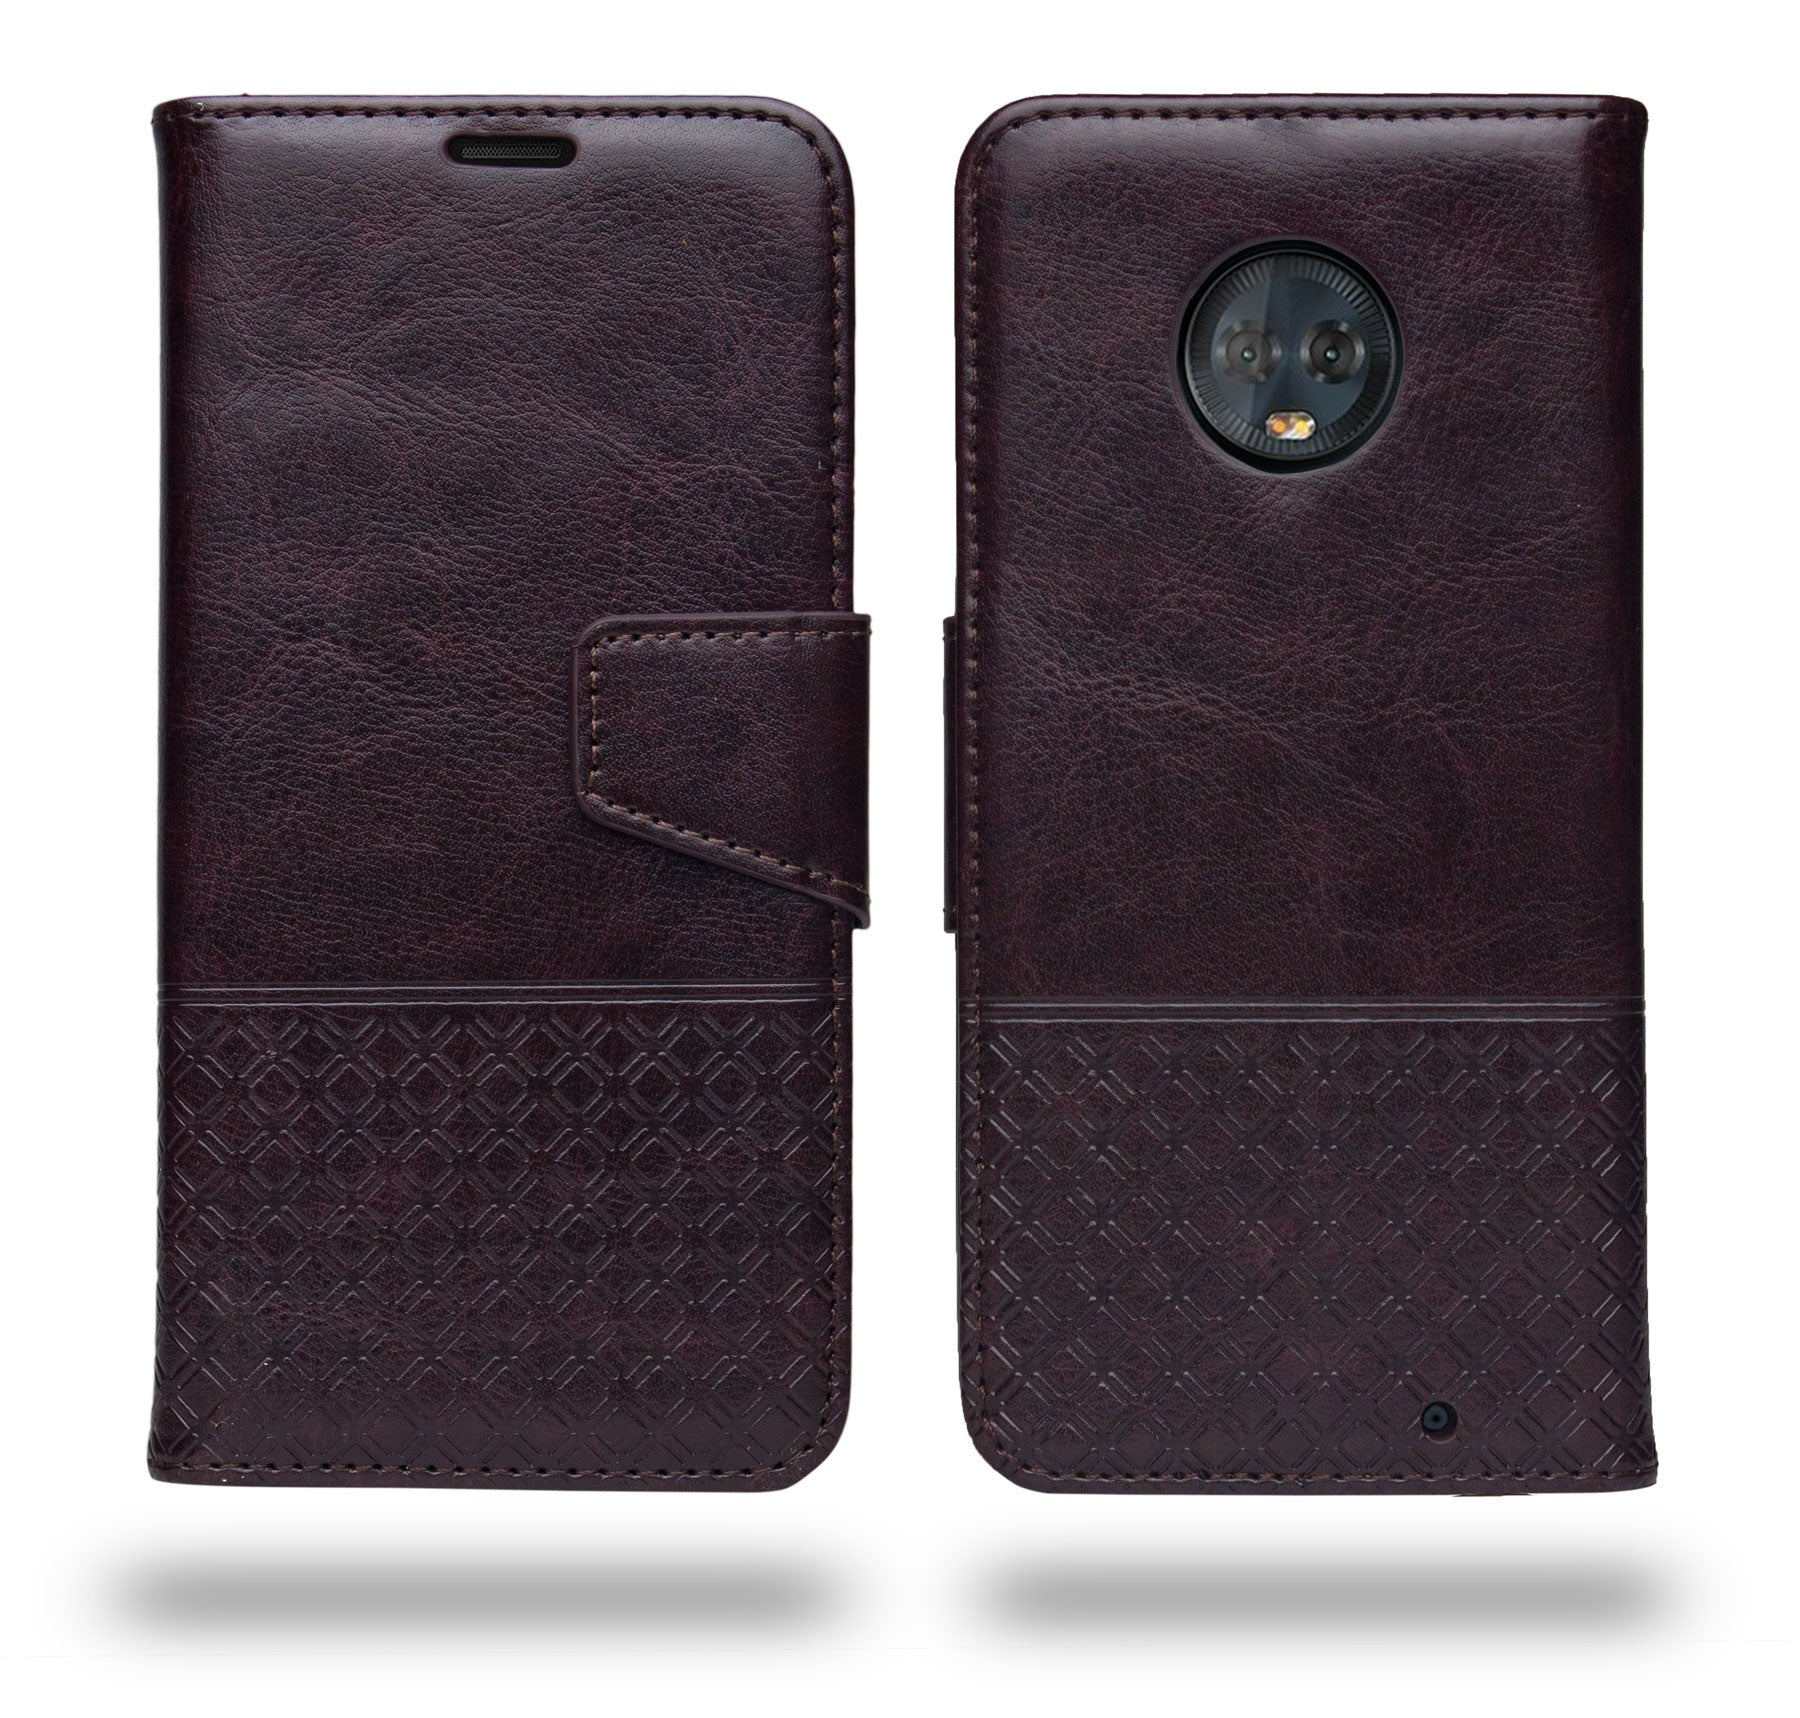 Ceego Luxuria Wallet Flip Cover for Motorola Moto G6 Plus (Walnut brown)